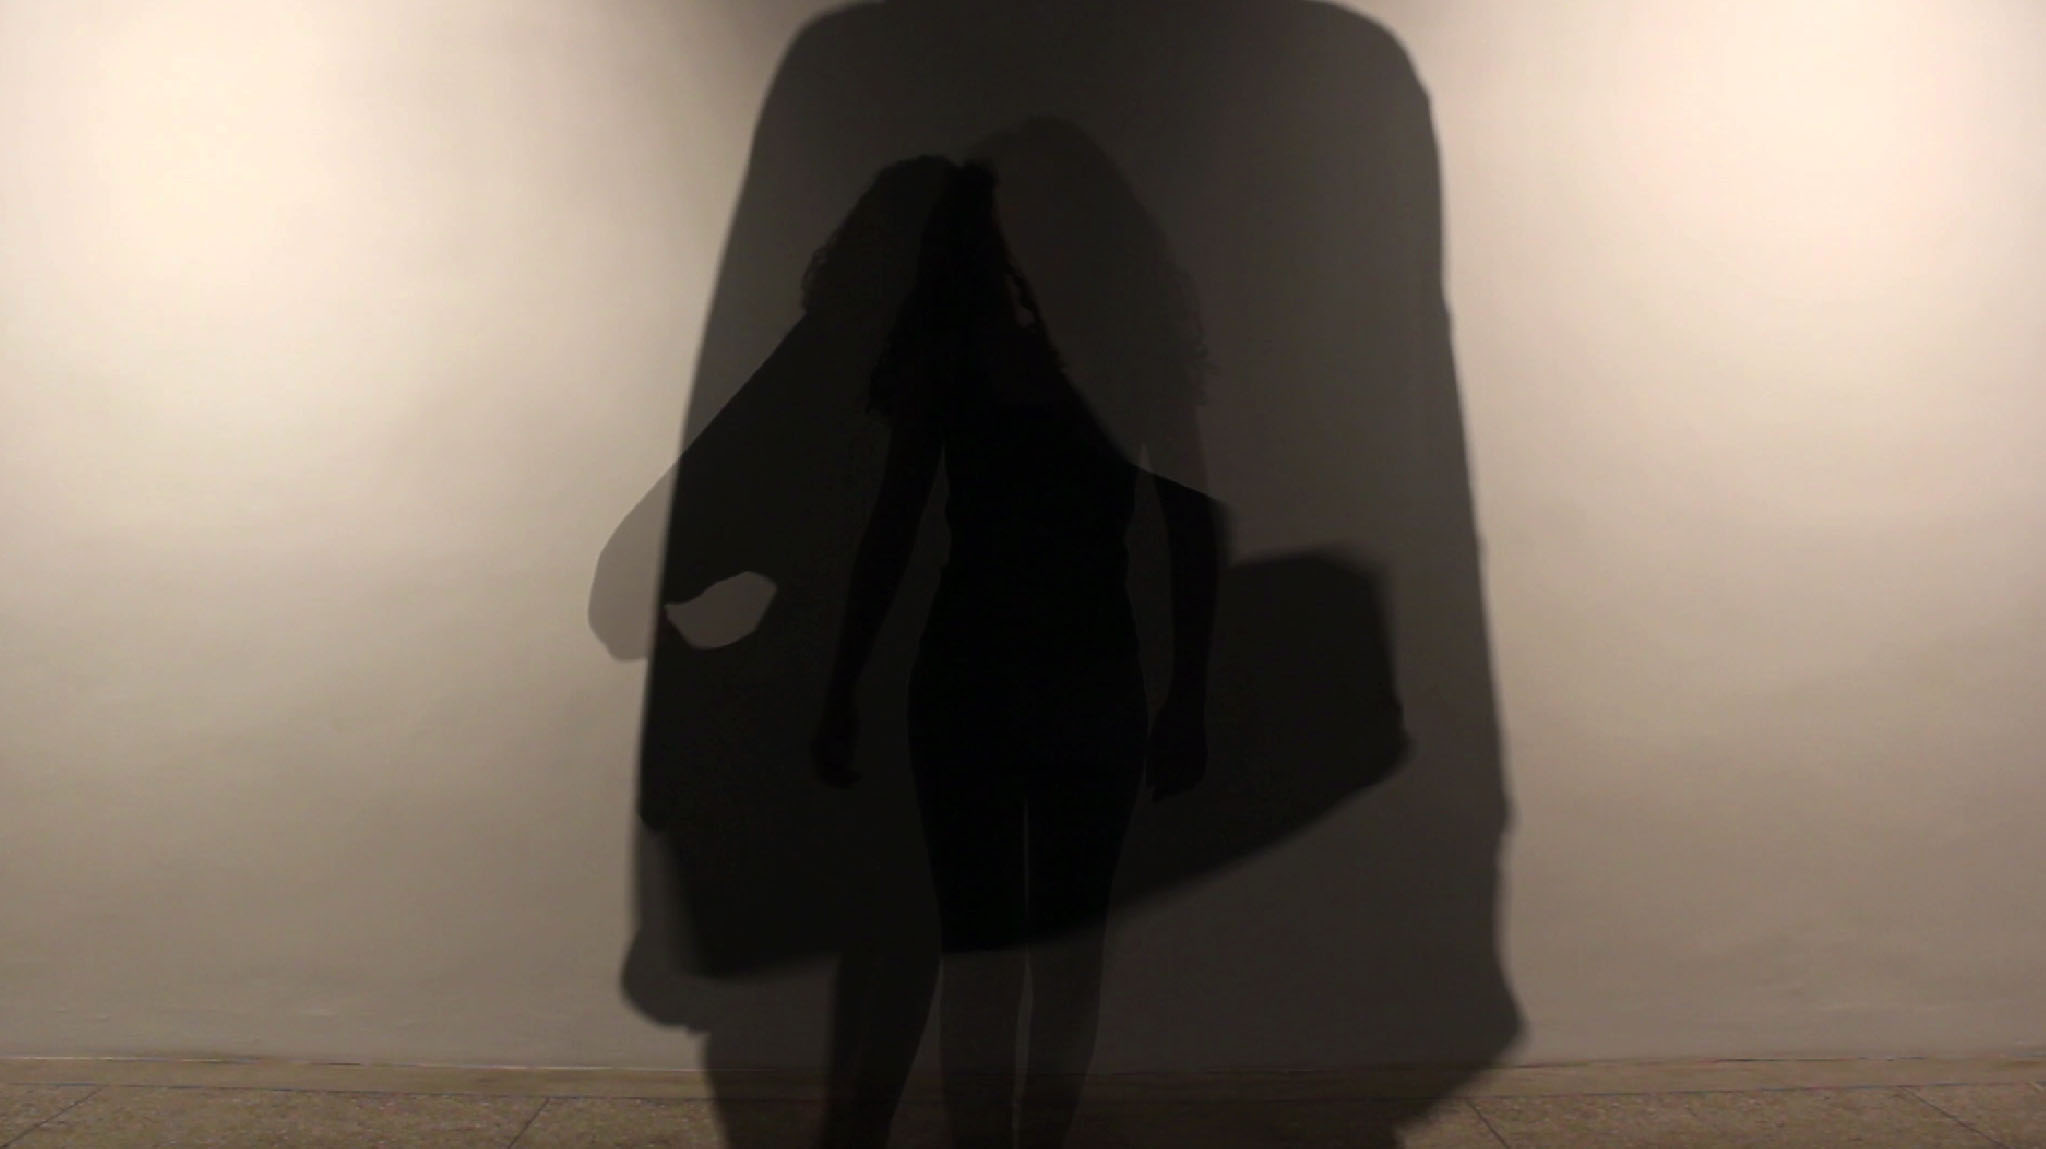 life's but a walking shadow, 2014